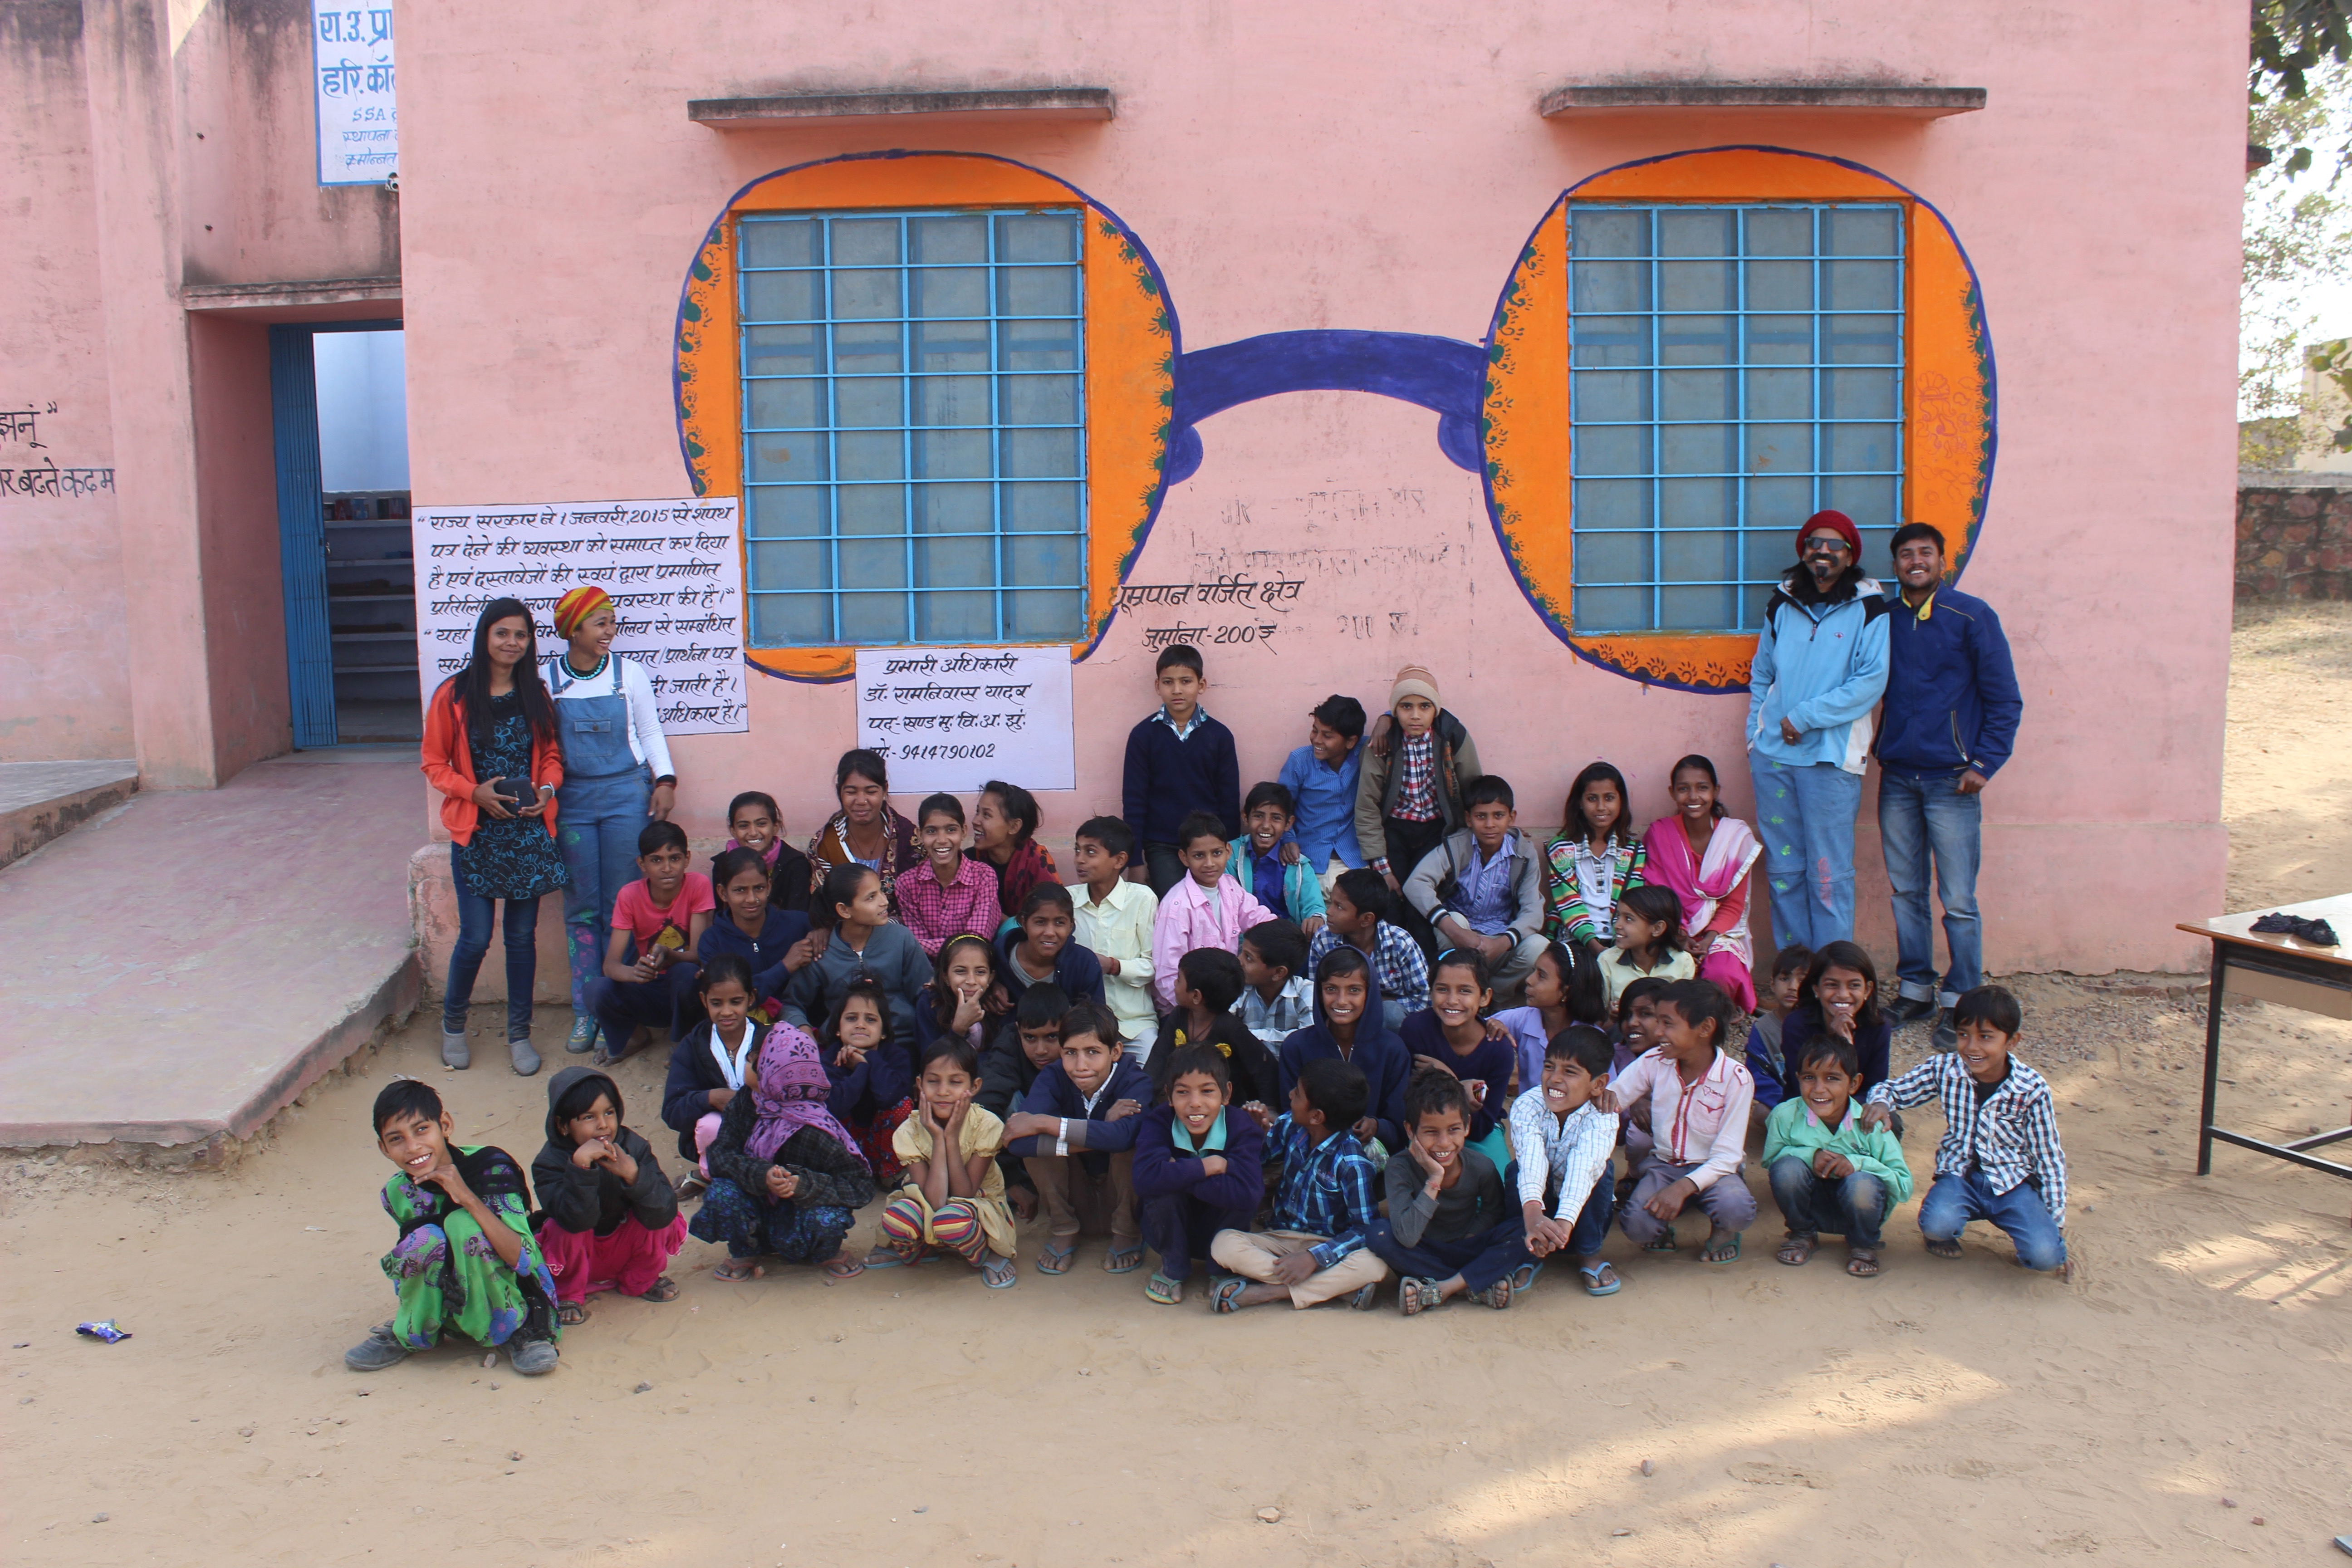 A mural on the wall painted with kids in a village school